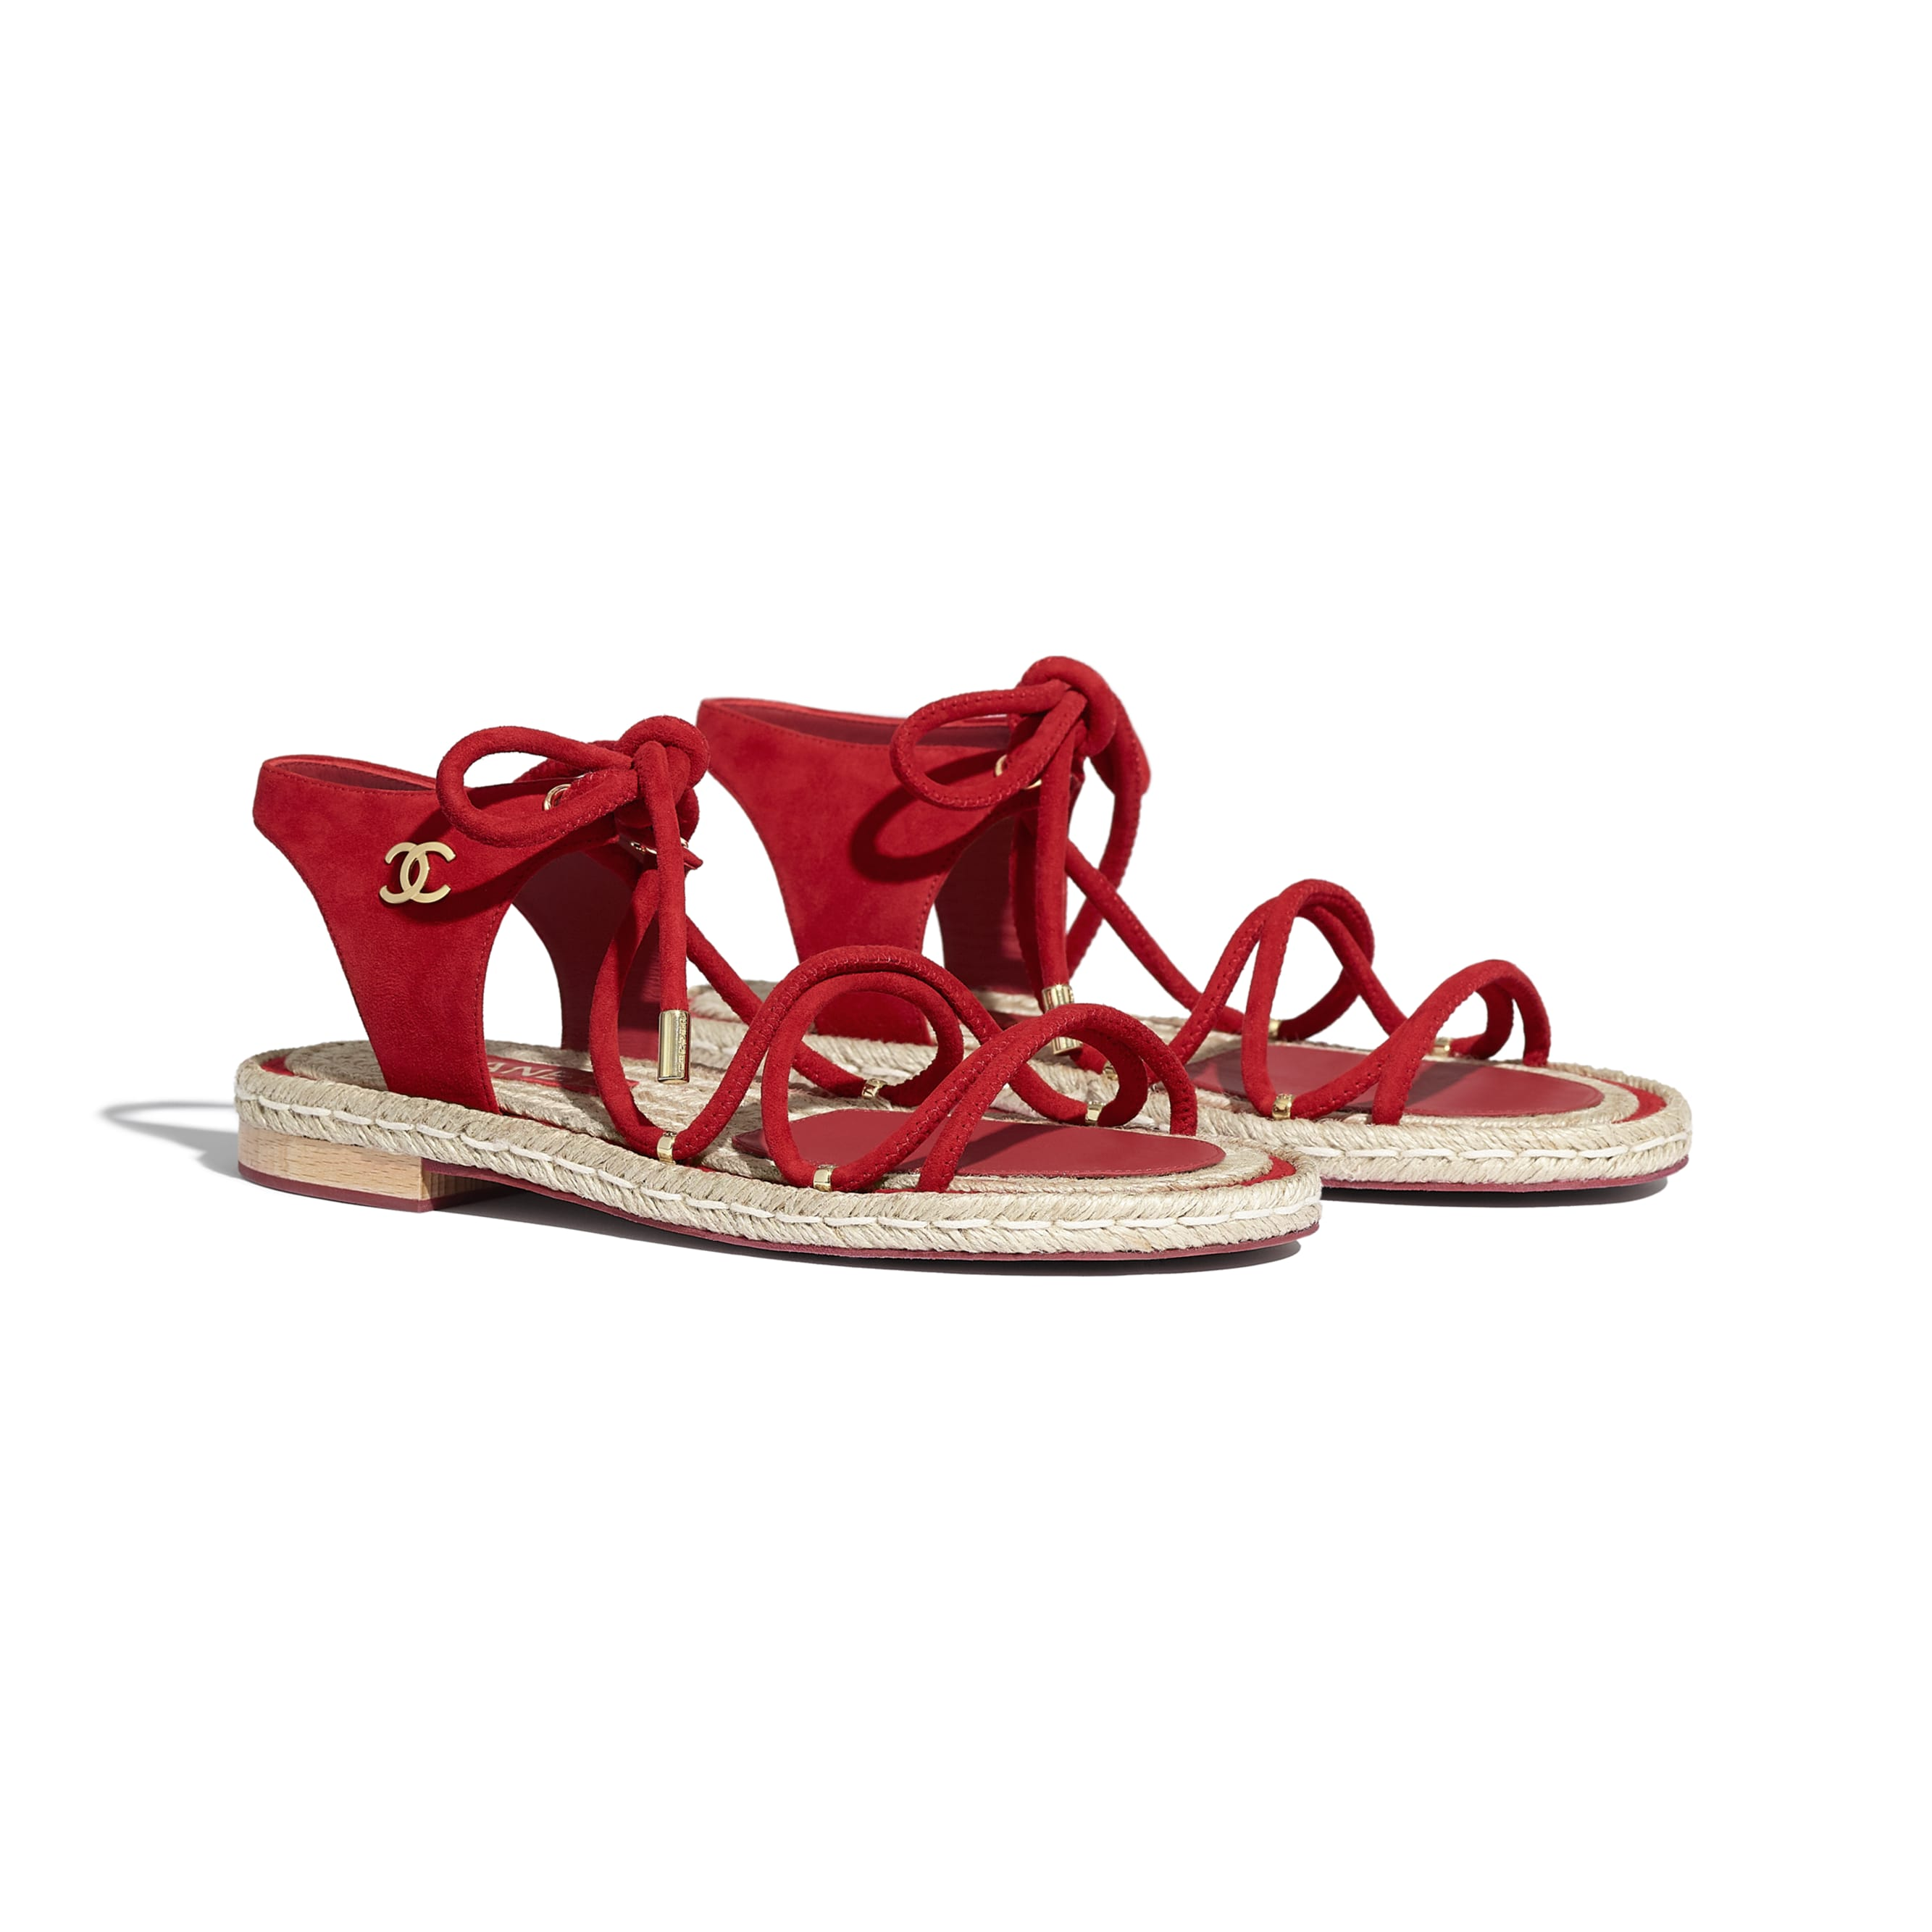 Sandals - Red - Suede Kidskin - CHANEL - Alternative view - see standard sized version